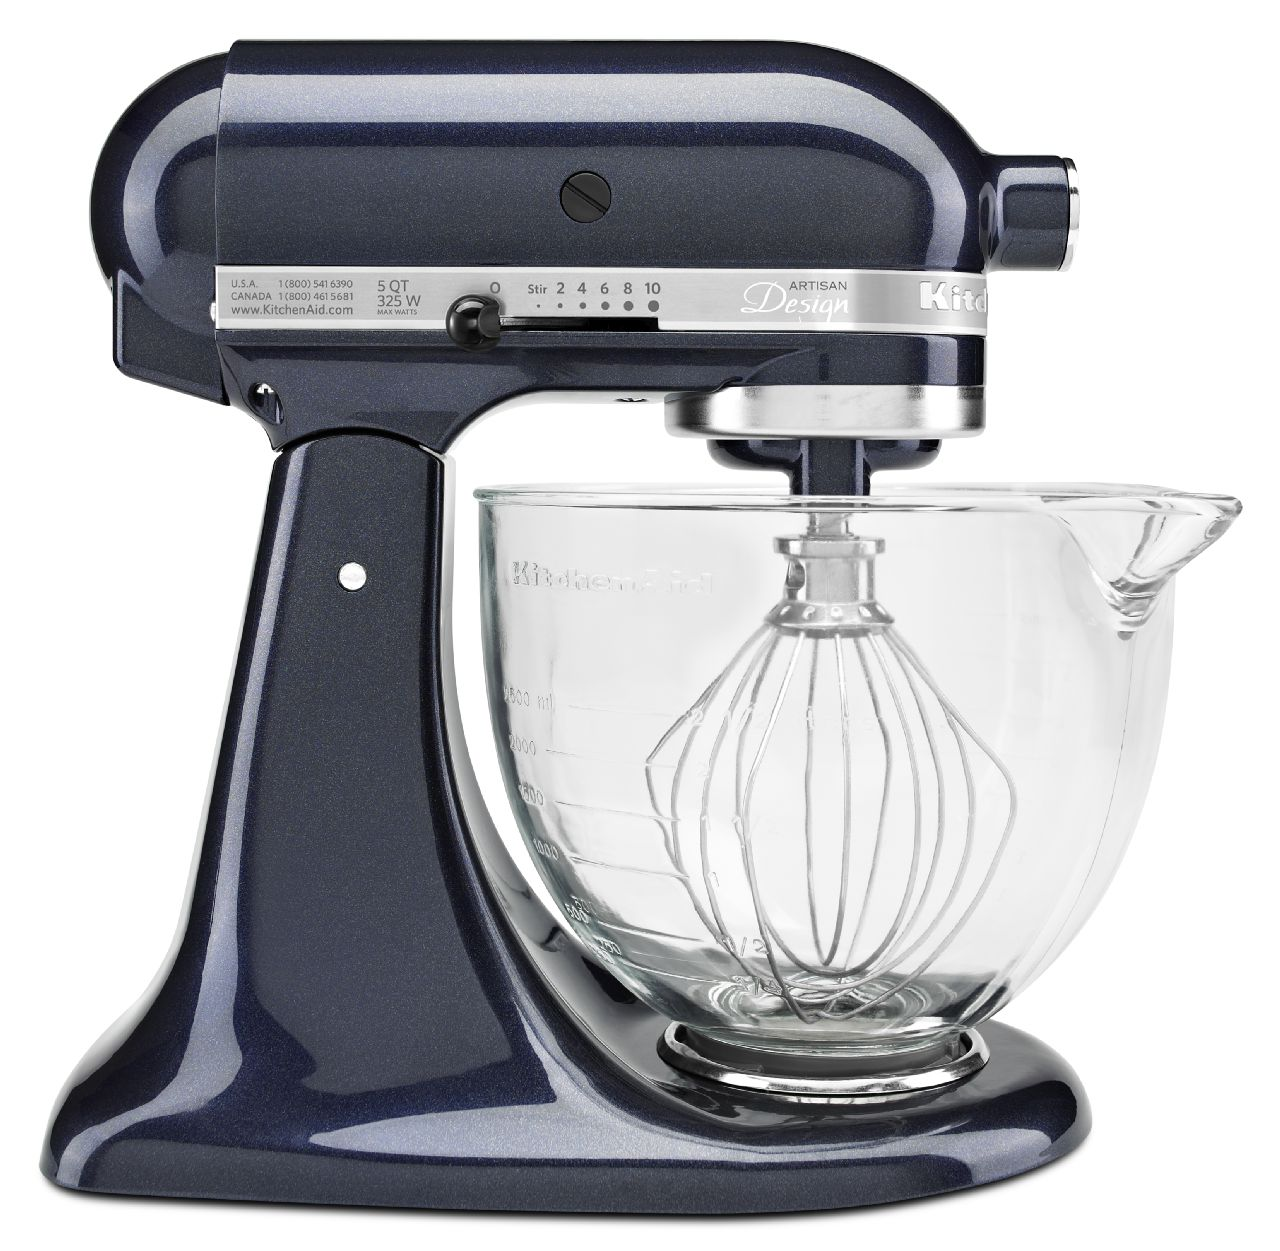 Kitchenaid 174 Artisan 174 Design Series 5 Quart Tilt Head Stand